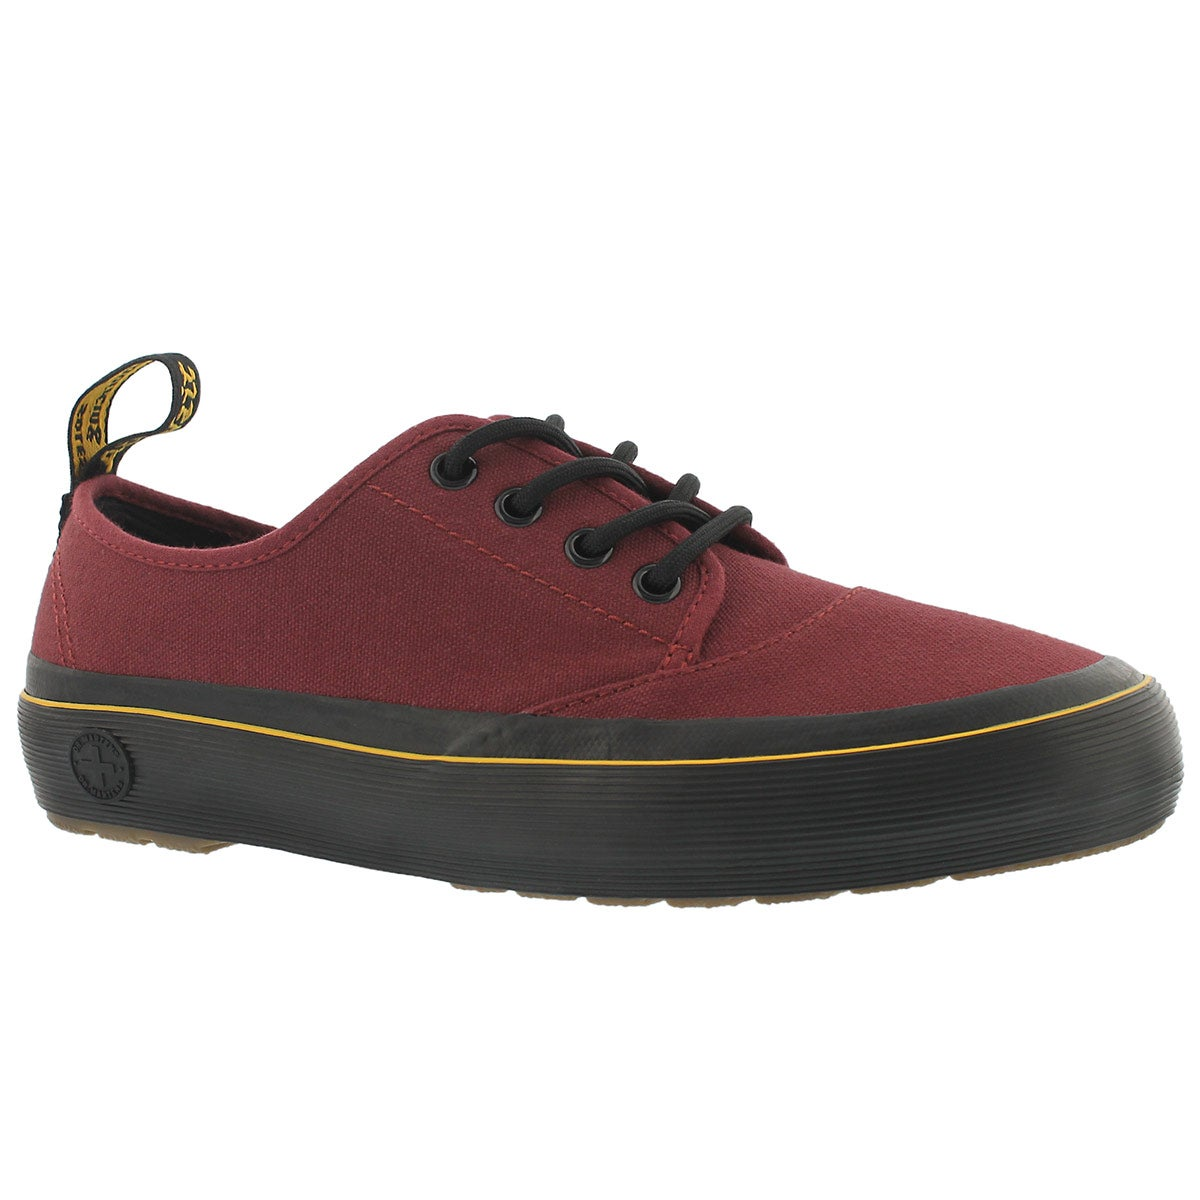 Women's JACY cherry red lace up sneakers